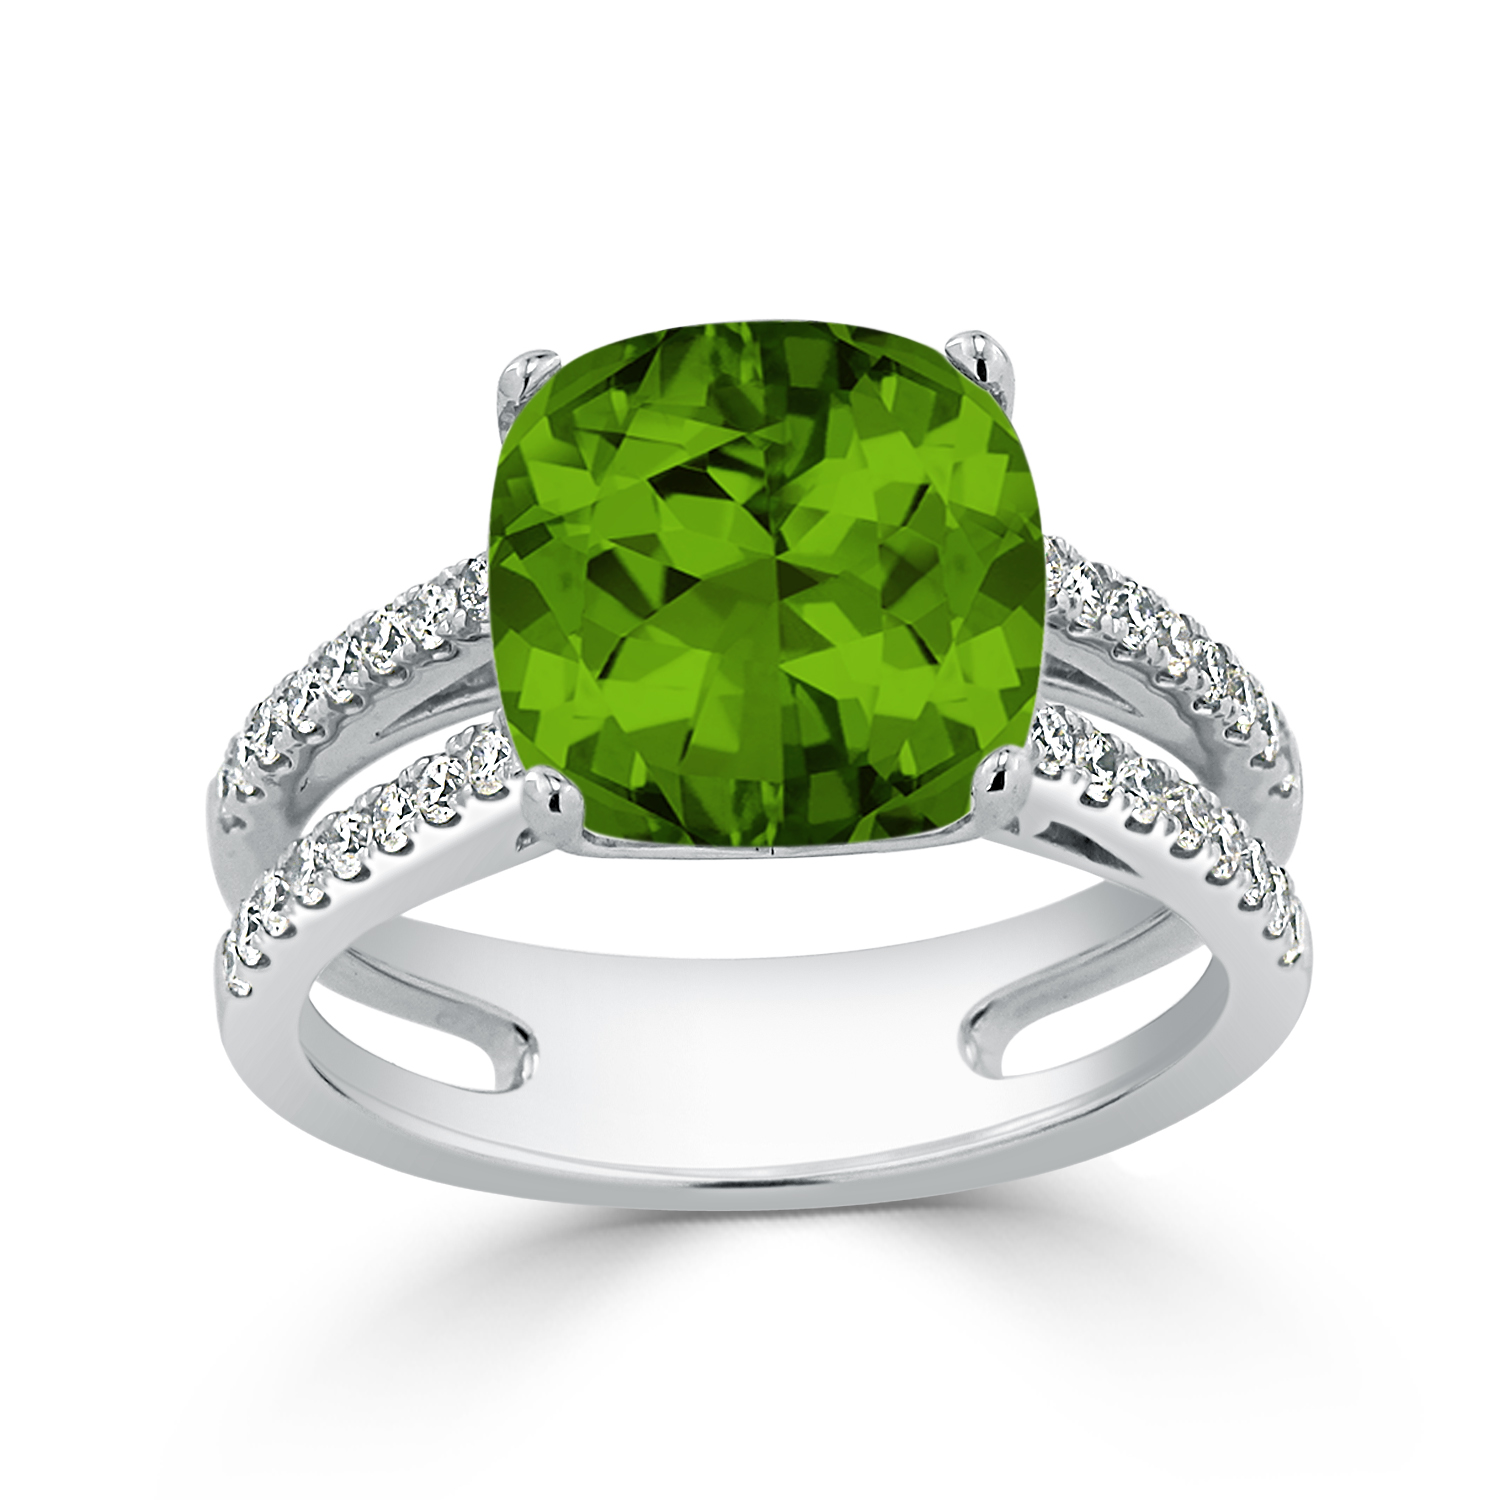 Halo Peridot Diamond Ring In 14k White Gold With 5 Carat Cushion Peridot